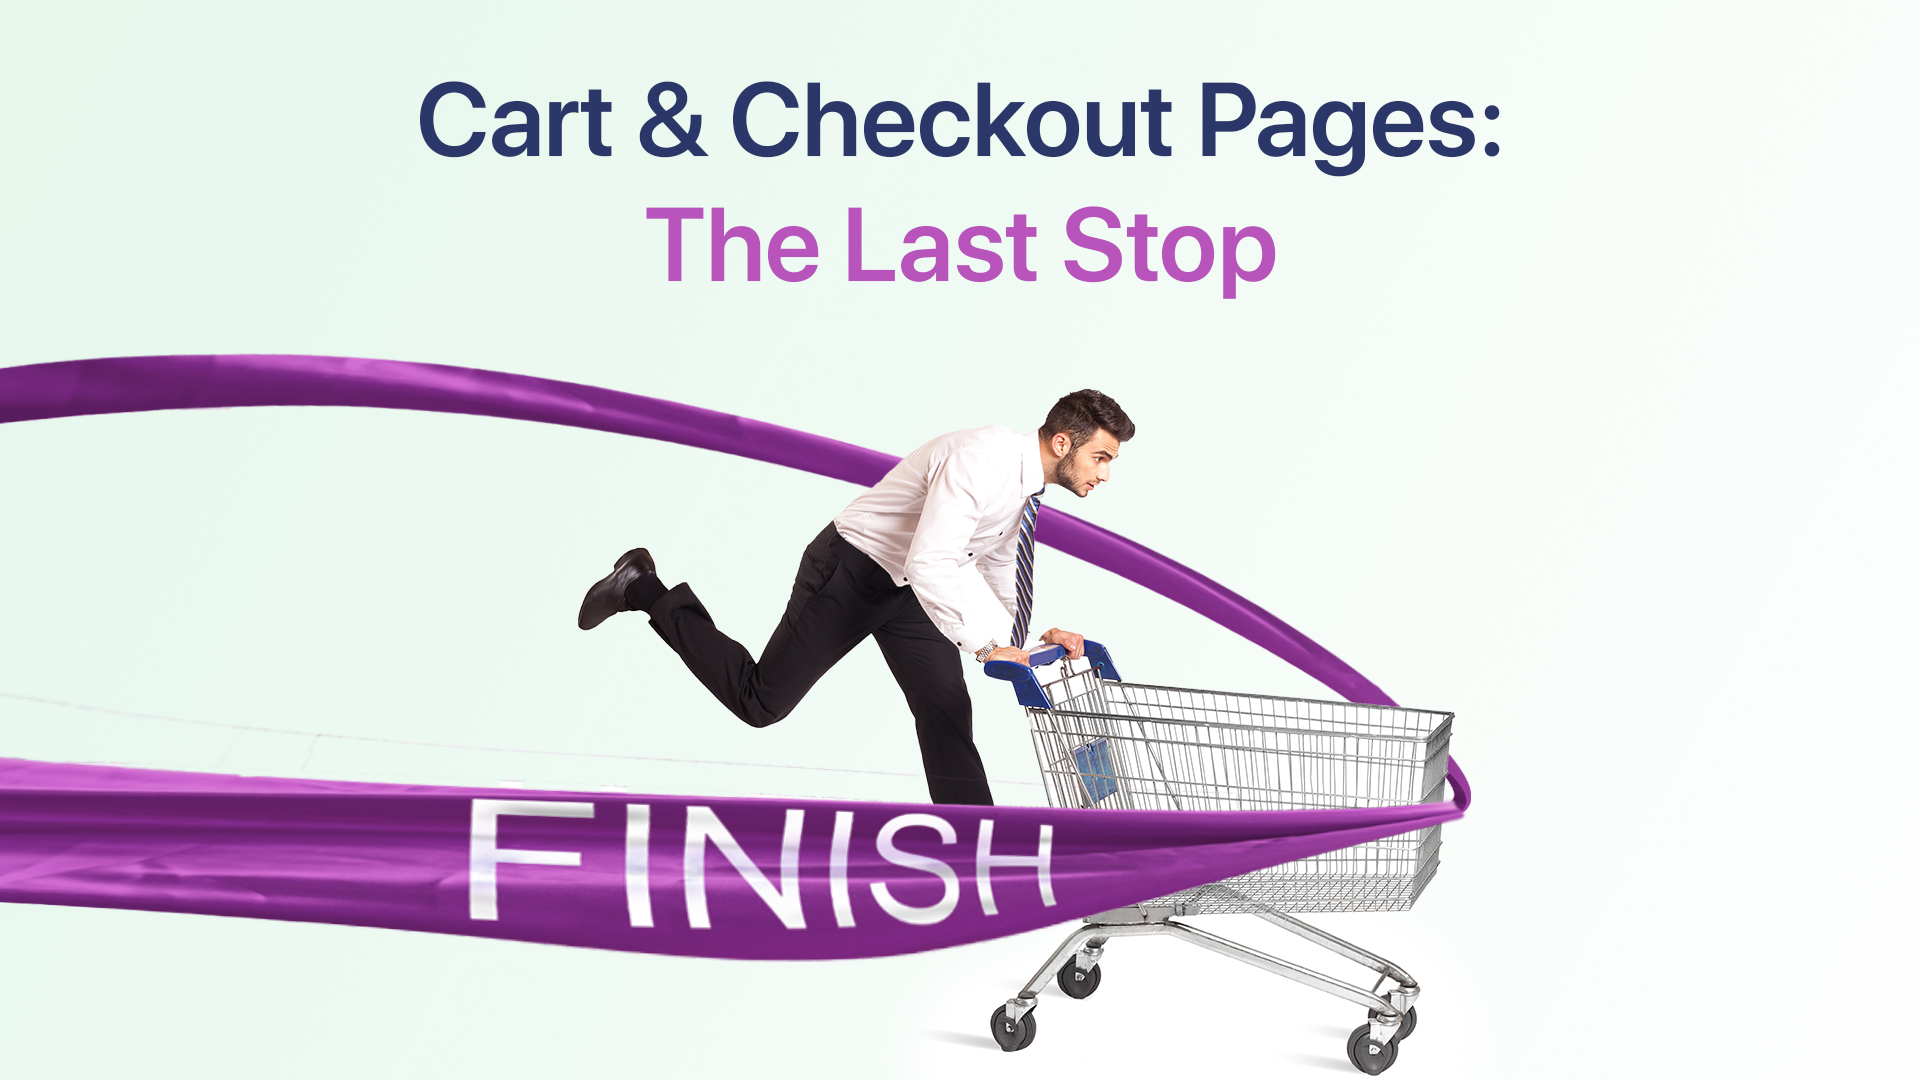 Cart & Checkout Pages: The Last Stop